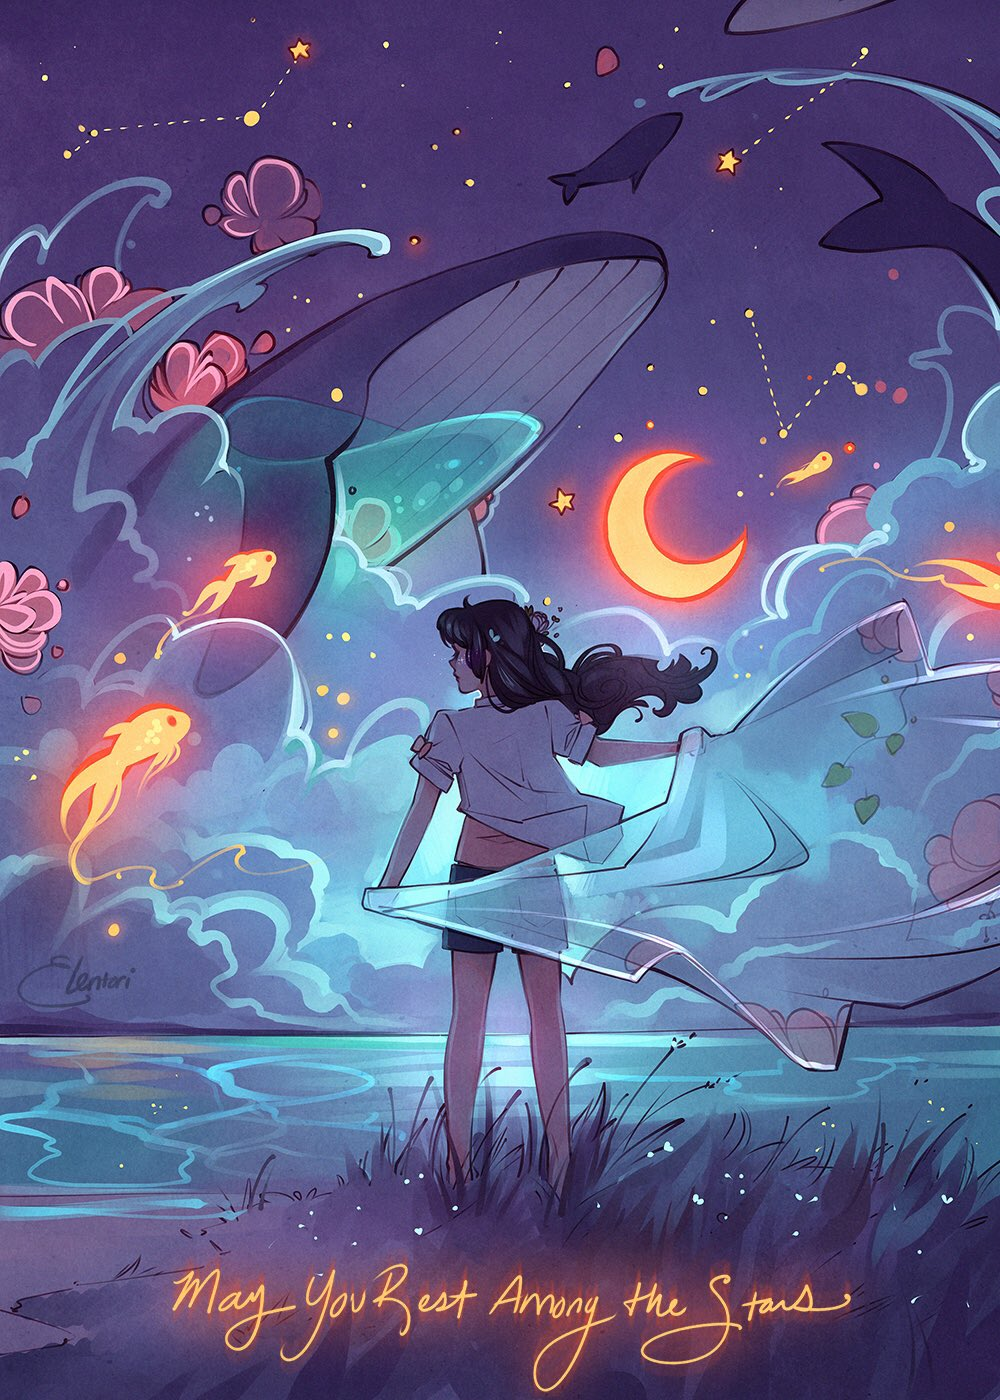 1girl artist_name barefoot black_hair black_shorts clouds constellation crescent_moon elentori english_commentary english_text fish floating_hair flower flying_whale from_behind glowing grass hair_flower hair_ornament highres holding horizon long_hair moon night night_sky ocean original outdoors petals qinni_(artist) shirt short_shorts short_sleeves shorts signature sky solo standing water whale white_shirt wind